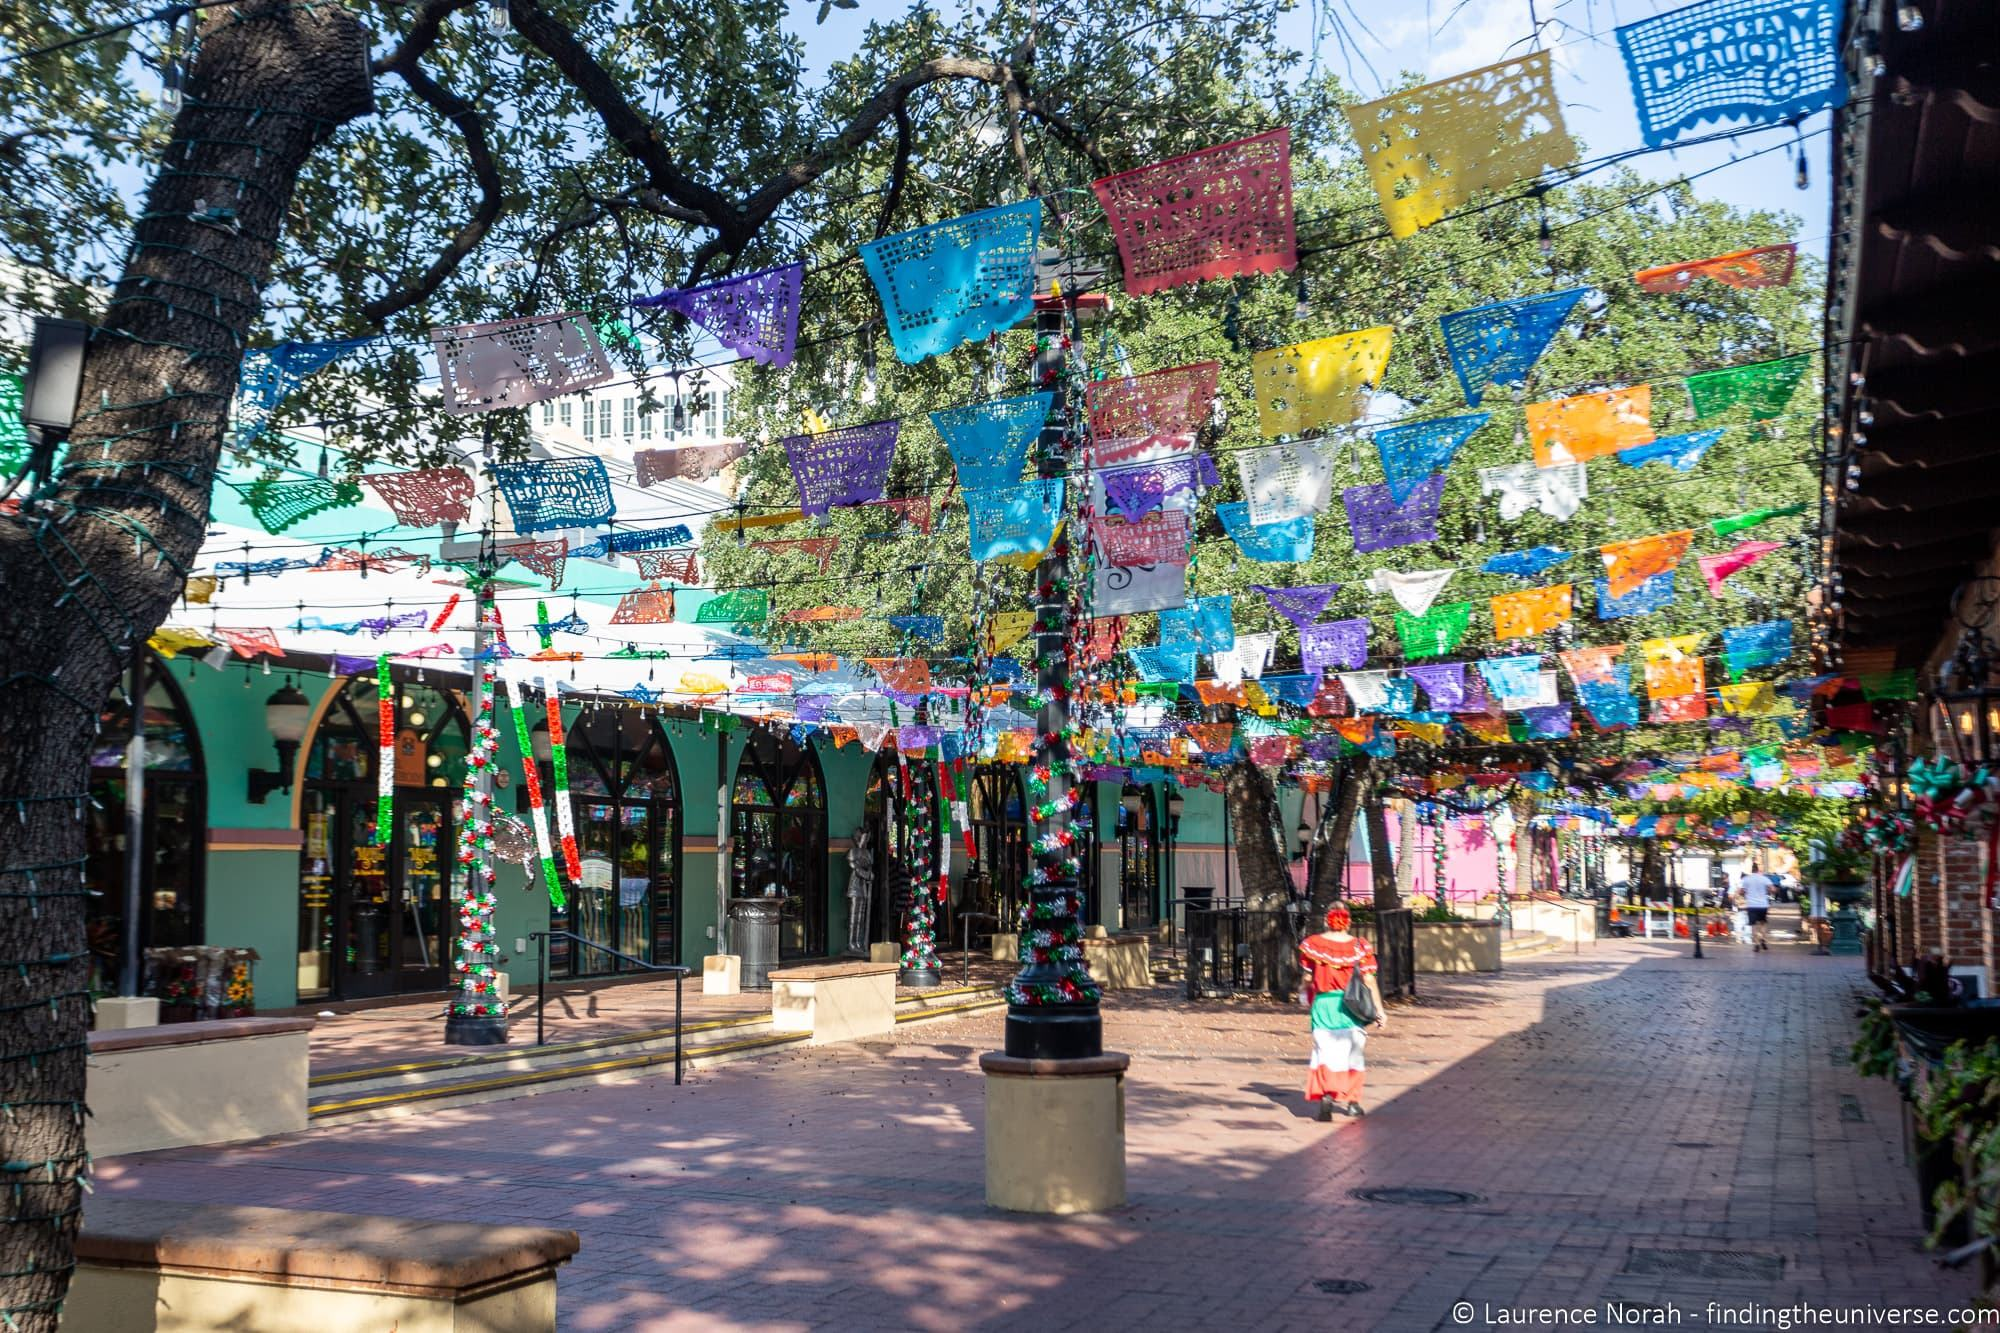 San Antonio Historic Market